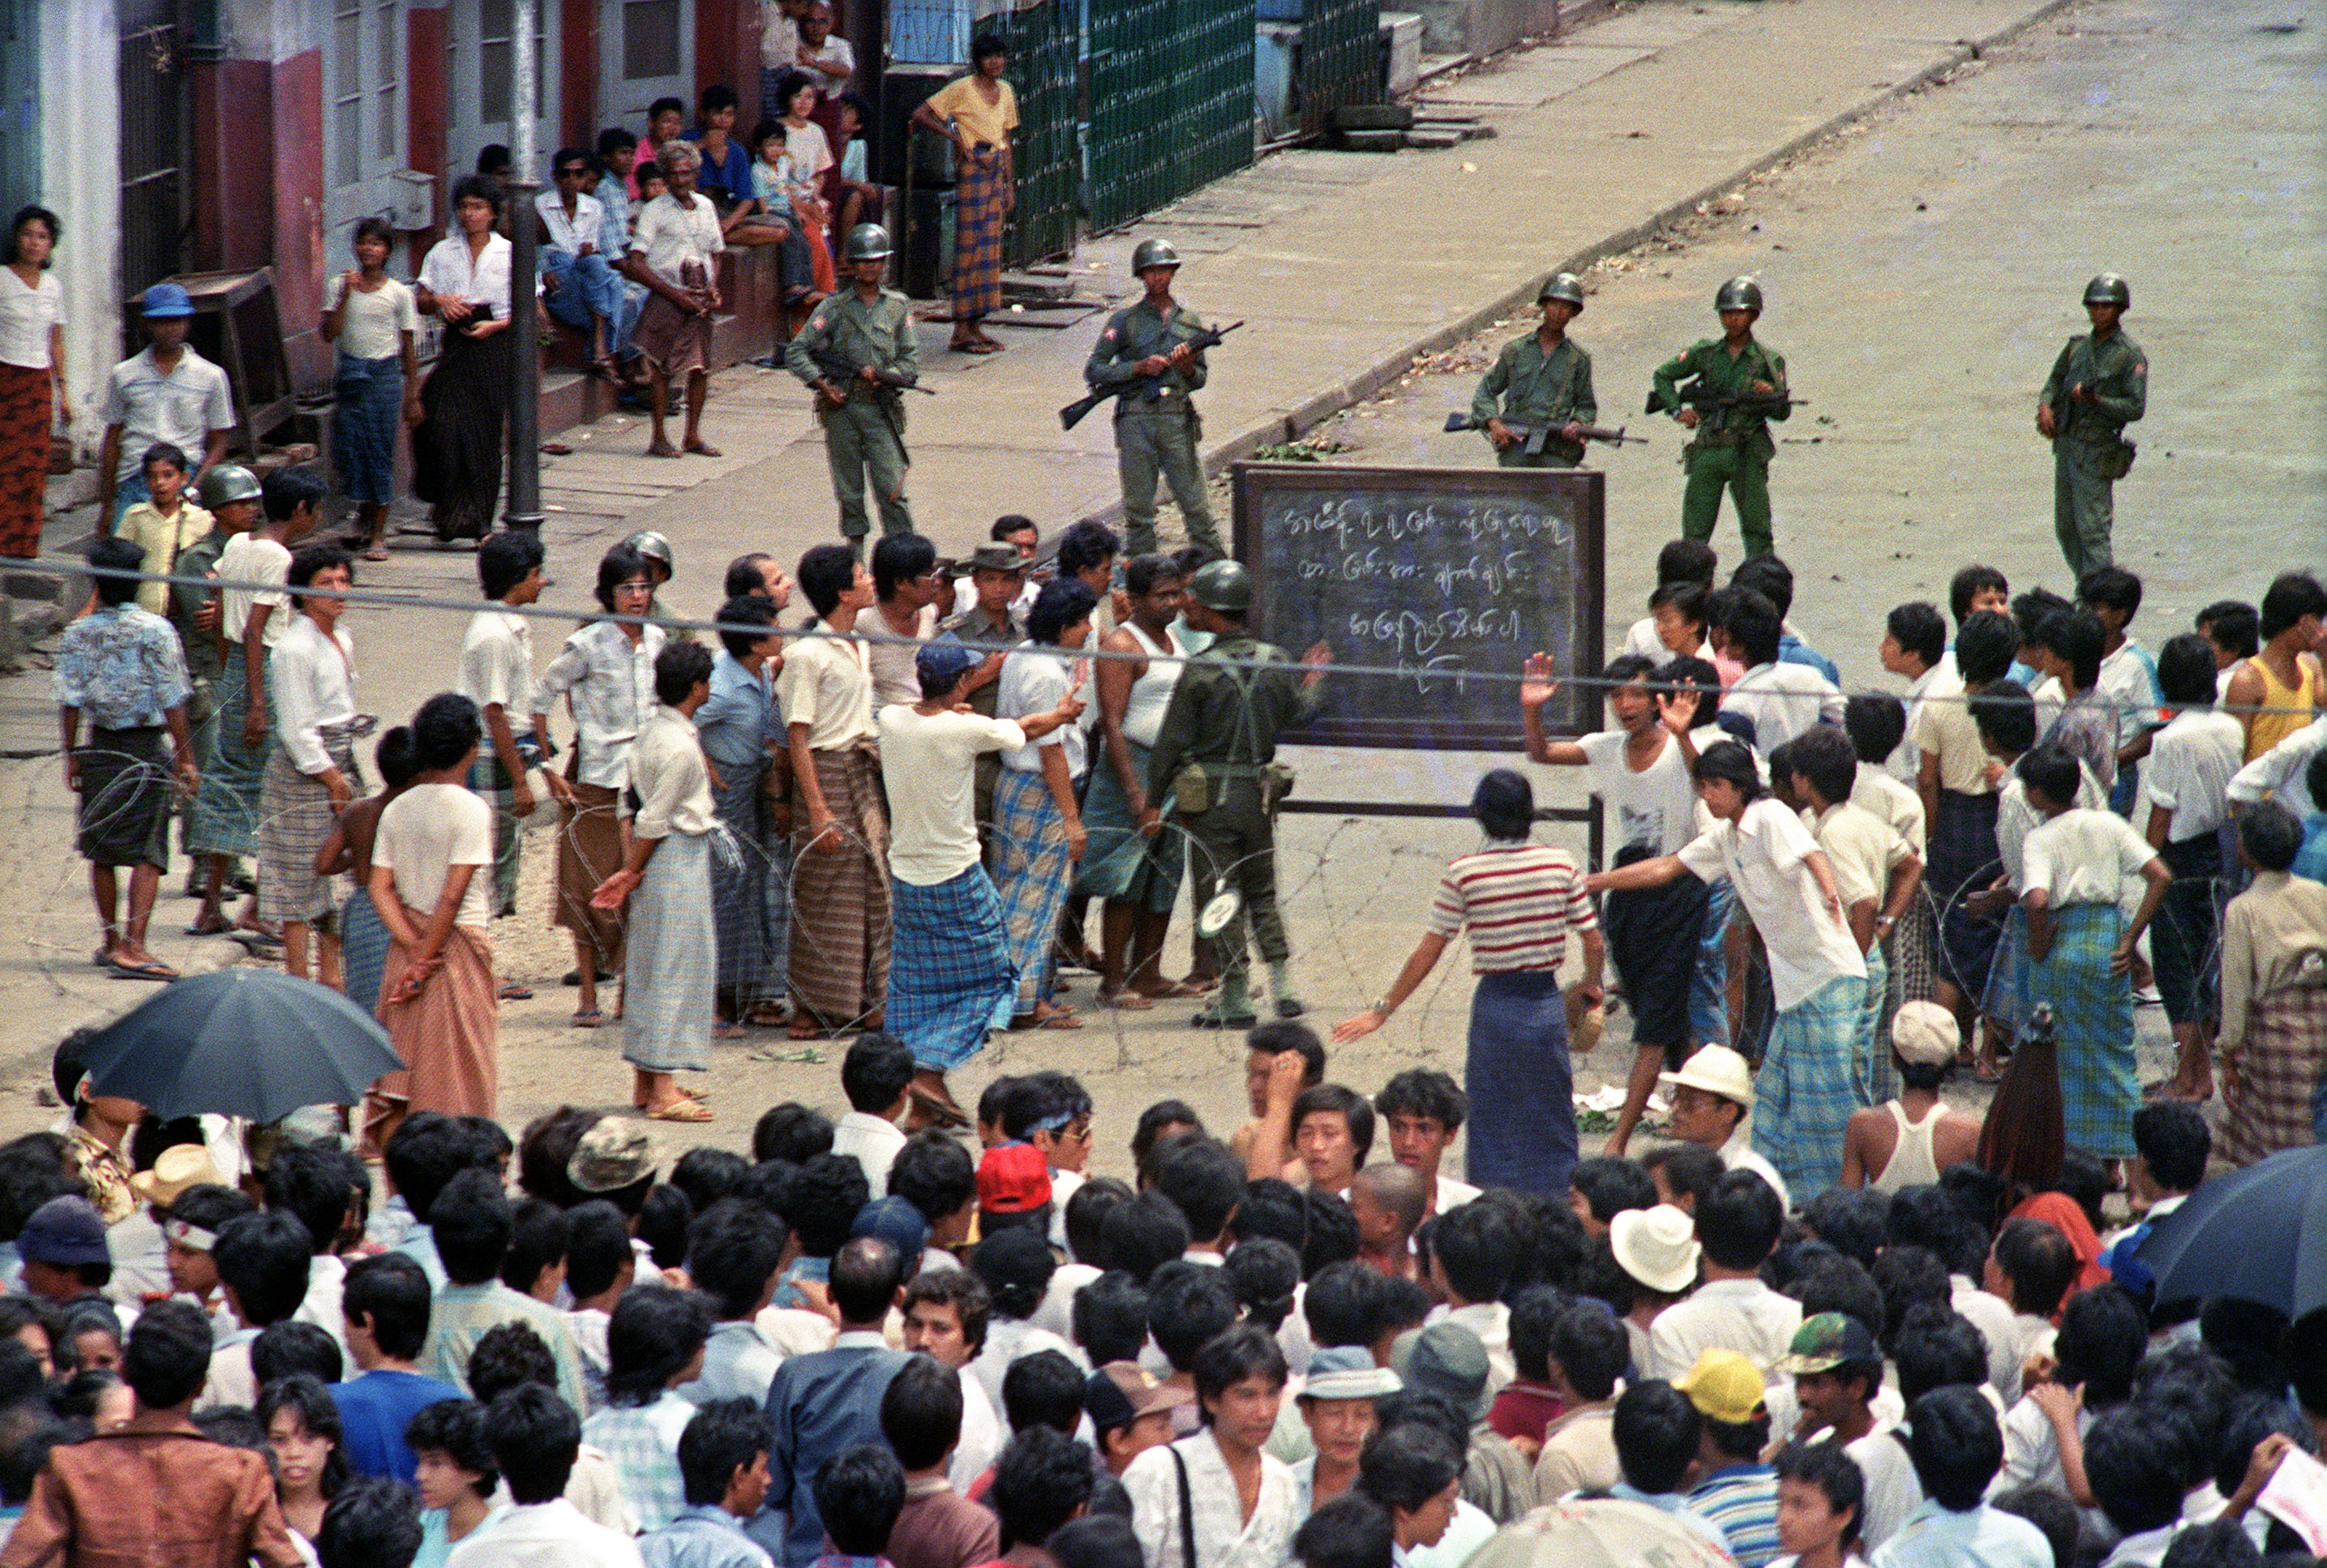 Troops order a crowd 26 Aug. 1988 in downtown Rangoon (Yangon) to disperse in front of sule pagoda sealed off by barbed wires.